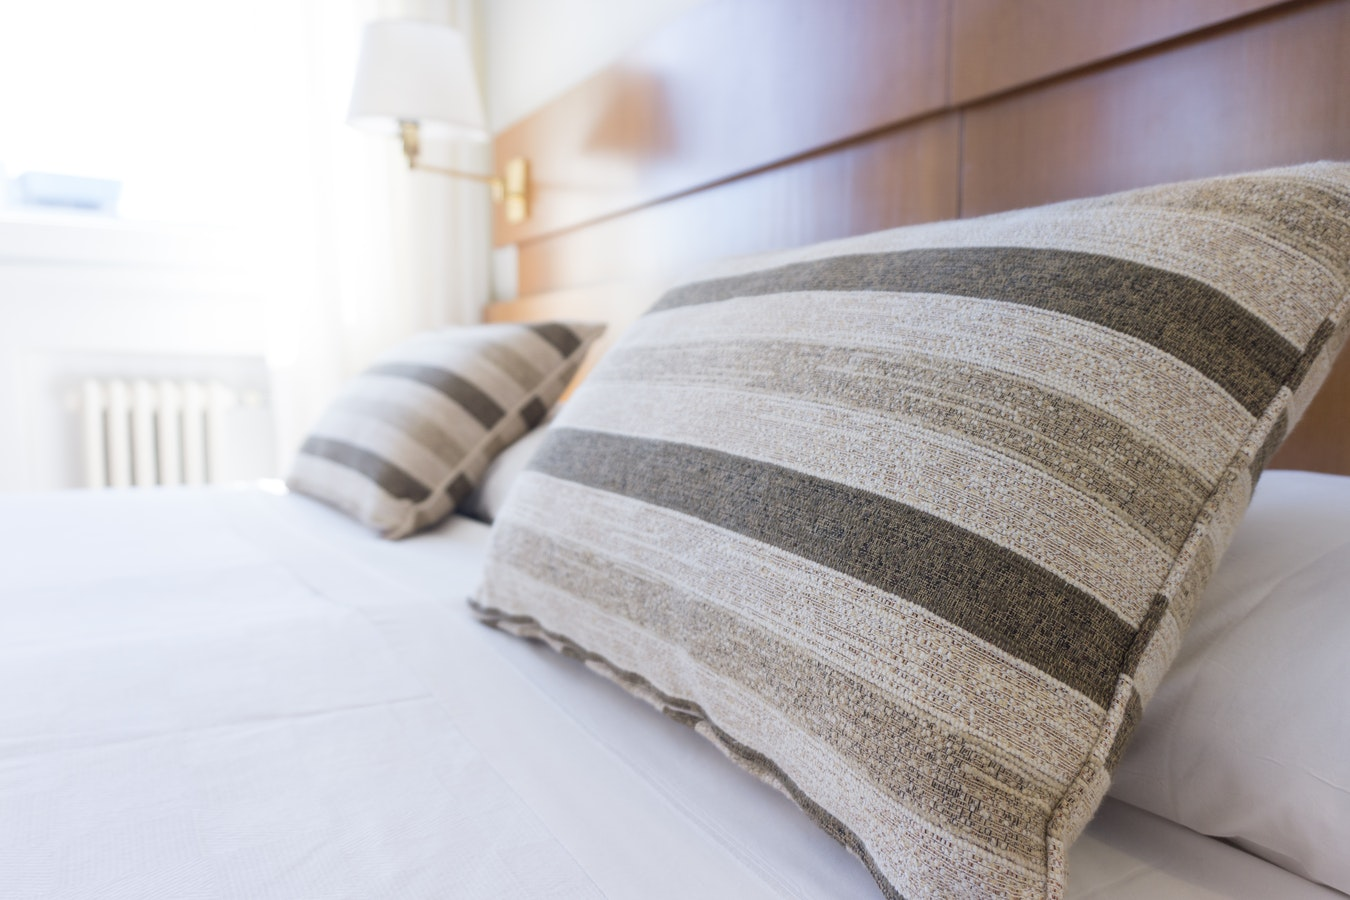 A bed in a hotel room. Healthy sleep habits are crucial to keeping the immune system strong